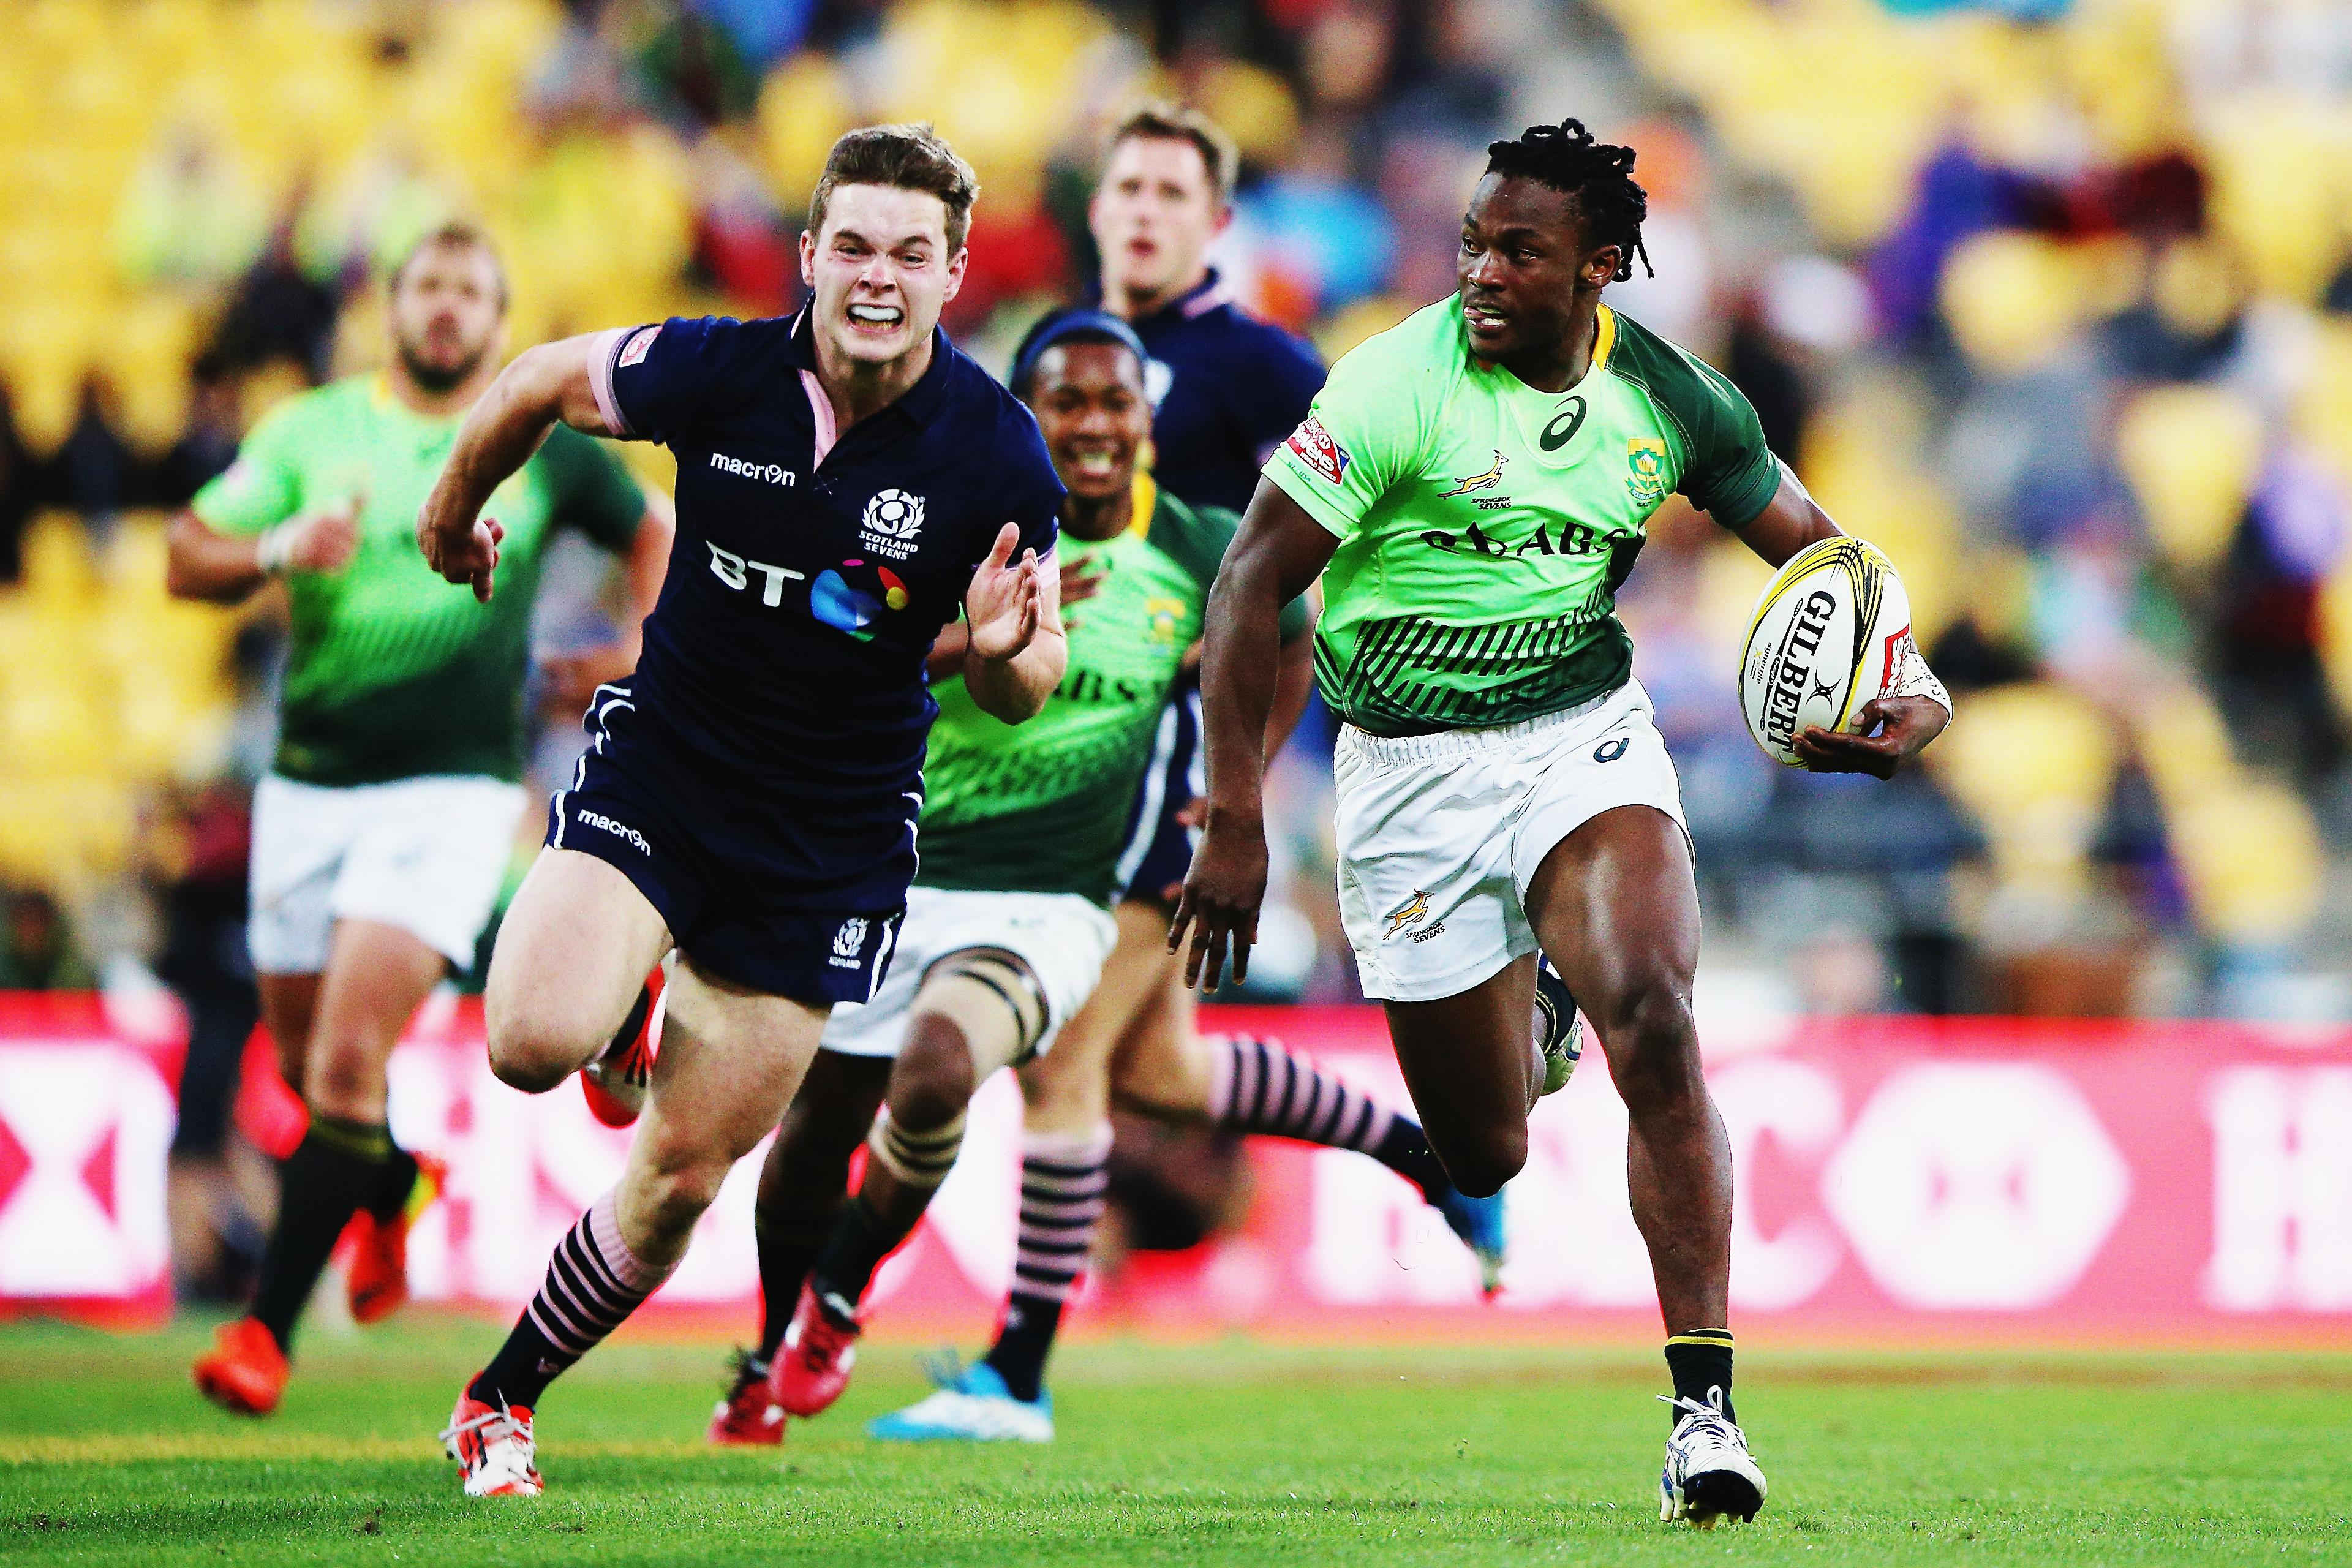 South Africa to 'make it happen' in Las Vegas